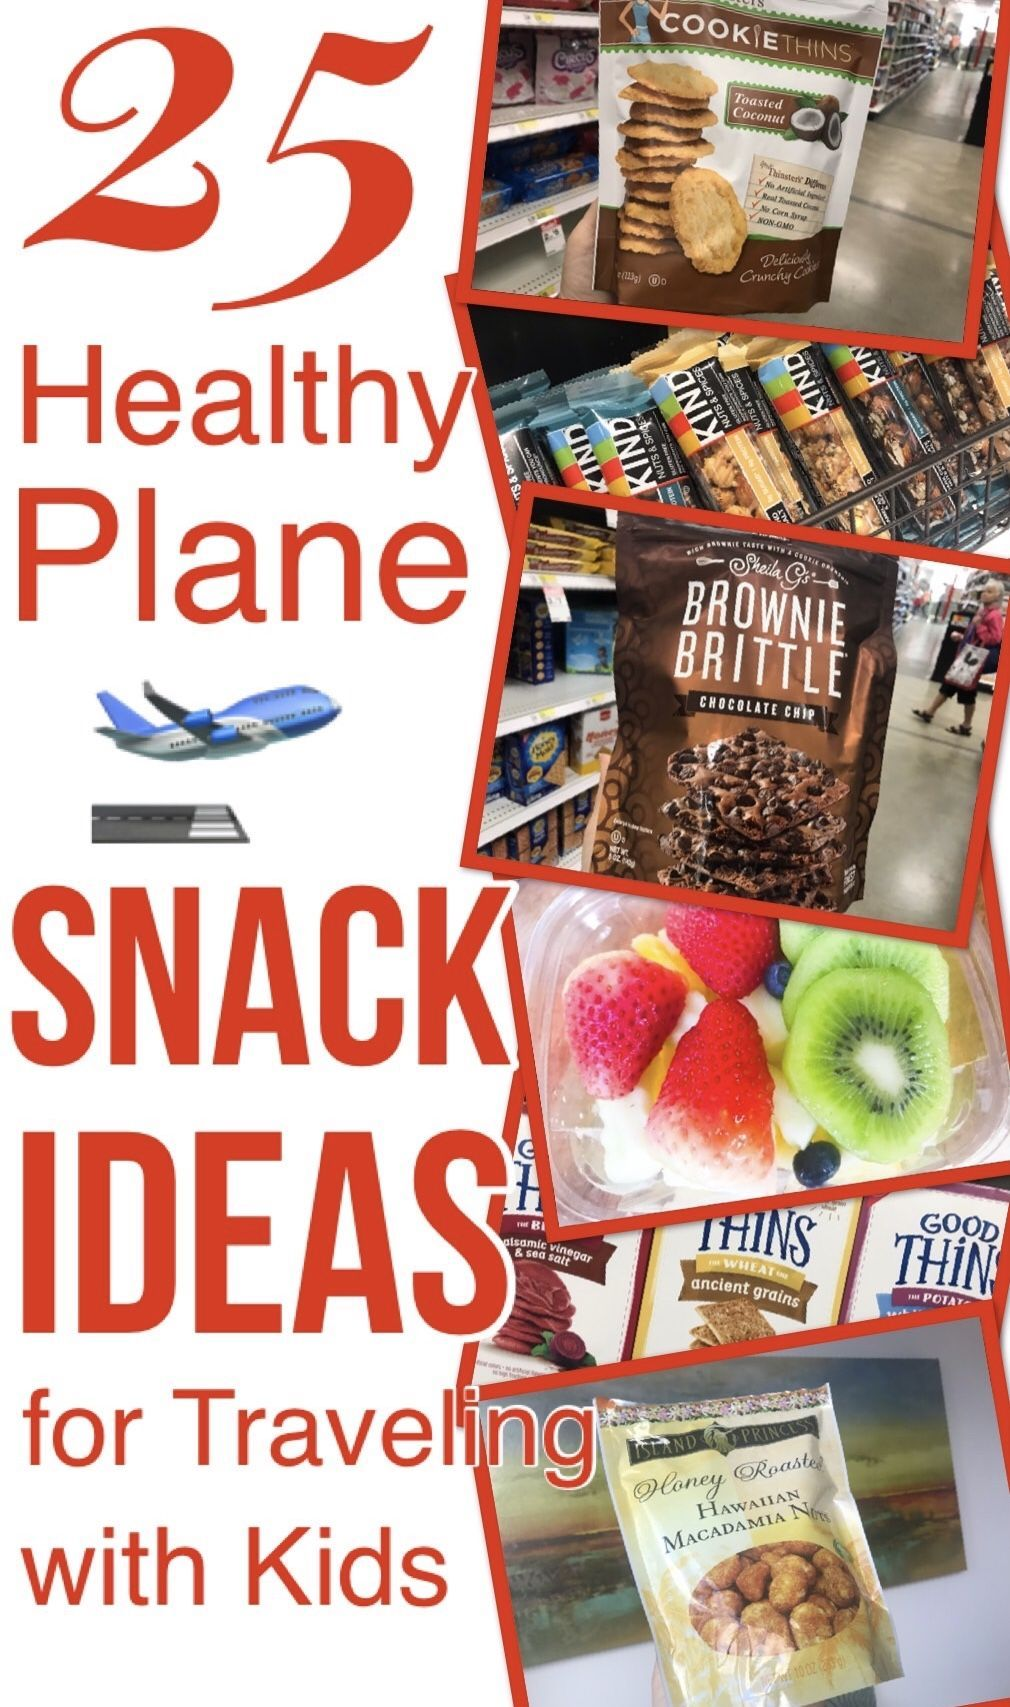 25 HEALTHY PLANE SNACK IDEAS (FOR TRAVELING WITH KIDS) | Need healthier plane snacks when traveling...